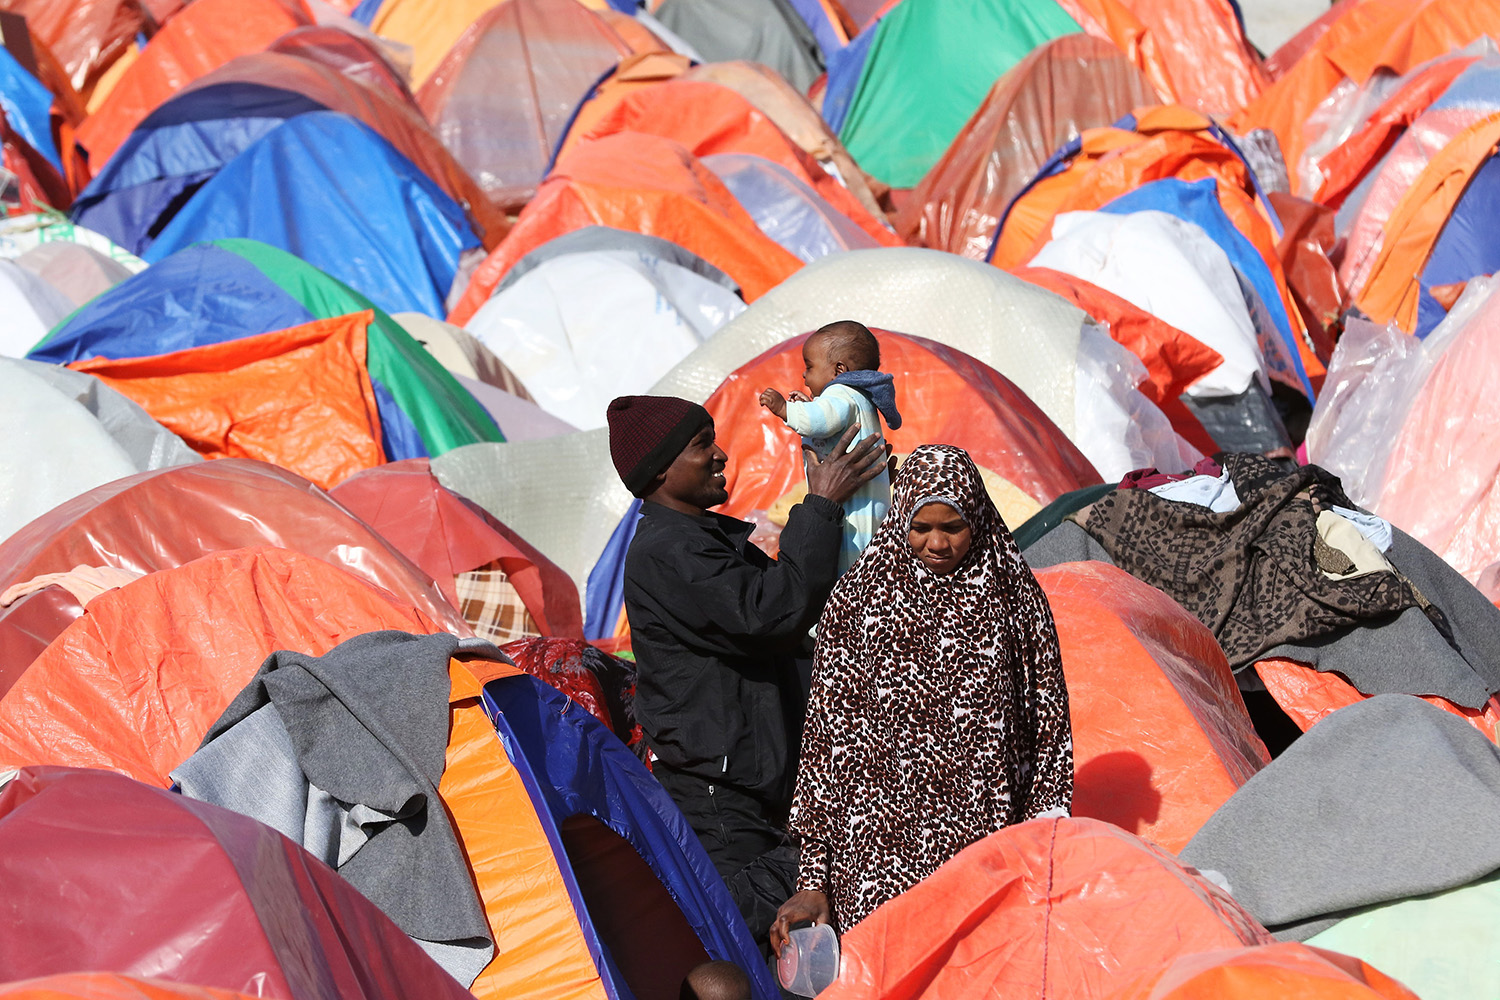 Sudanese refugees from Darfur gather amid tents during a sit-in outside the United Nations High Commissioner for Refugees in the Jordanian capital Amman on Dec. 12, 2015, demanding better treatment and acceleration of their relocation.